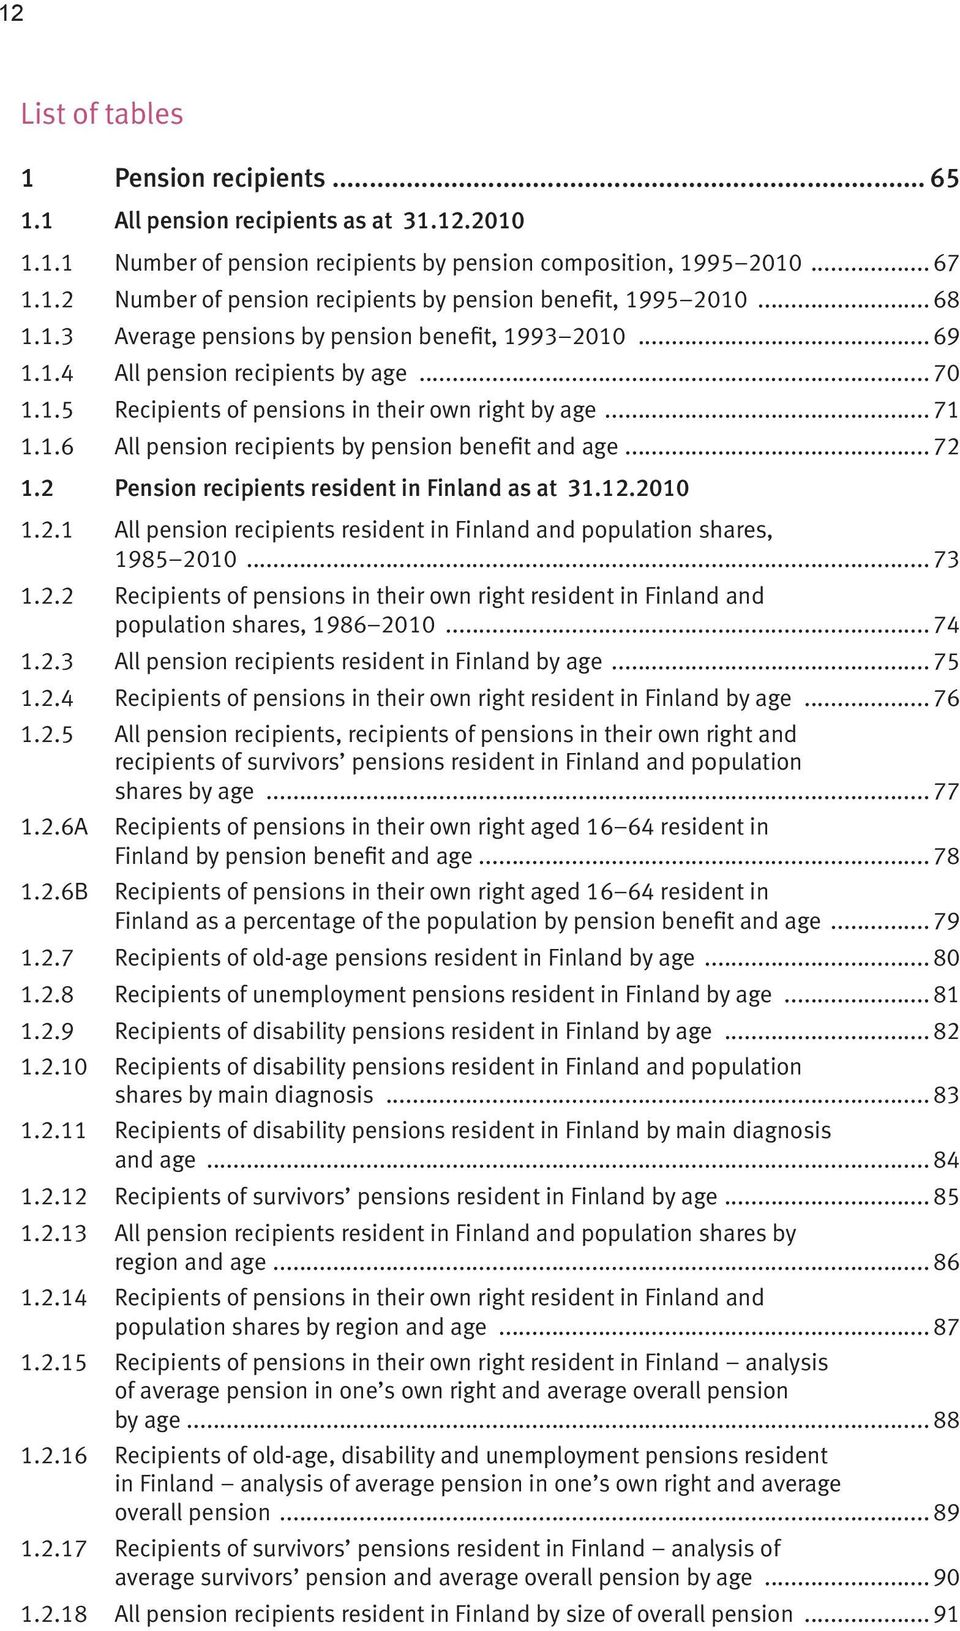 .. 72 1.2 Pension recipients resident in Finland as at 31.12.2010 1.2.1 All pension recipients resident in Finland and population shares, 1985 2010... 73 1.2.2 Recipients of pensions in their own right resident in Finland and population shares, 1986 2010.